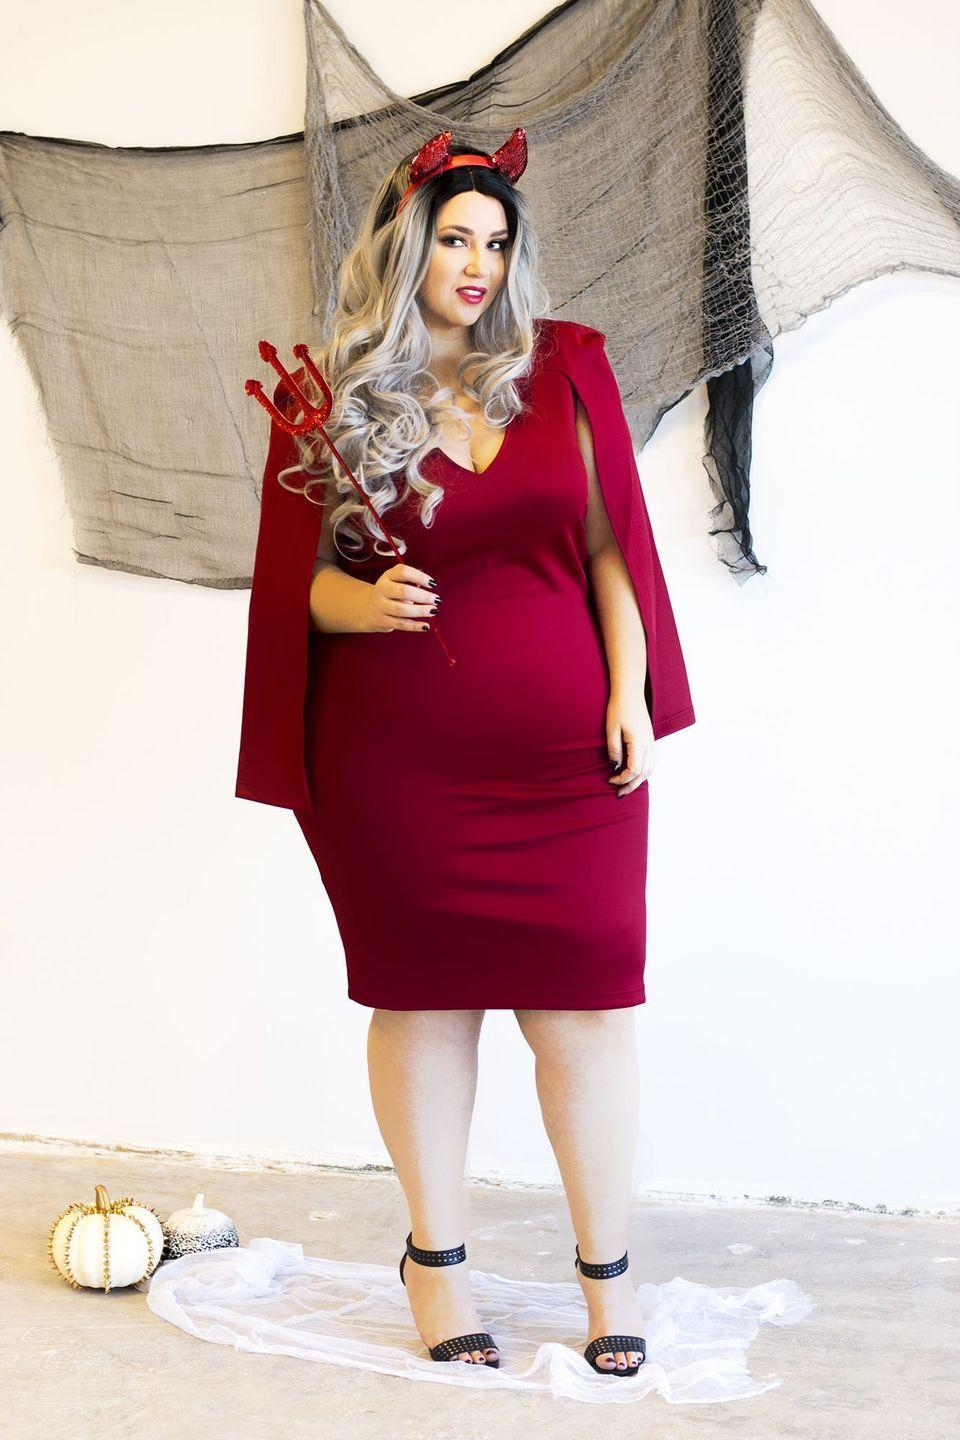 """<p>If you'd rather not buy a costume, channel your inner devil. All you need is a red outfit and a few inexpensive accessories. </p><p><a class=""""link rapid-noclick-resp"""" href=""""https://go.redirectingat.com?id=74968X1596630&url=https%3A%2F%2Fwww.eloquii.com%2Fflare-sleeve-scuba-dress%2F1244062.html%3Fdwvar_1244062_colorCode%3D23&sref=https%3A%2F%2Fwww.oprahmag.com%2Fstyle%2Fg28615520%2Fplus-size-halloween-costume-ideas%2F"""" rel=""""nofollow noopener"""" target=""""_blank"""" data-ylk=""""slk:SHOP THE DRESS"""">SHOP THE DRESS</a> <br></p><p><a class=""""link rapid-noclick-resp"""" href=""""https://www.amazon.com/Rubies-Costume-Unisex-Adults-Accessory-Multicolor/dp/B0027CA1S0/ref=sr_1_11?crid=1G4ALD0QX8D9F&keywords=devil+accessories+for+women&qid=1565269155&s=gateway&sprefix=devil+access%2Caps%2C130&sr=8-11&tag=syn-yahoo-20&ascsubtag=%5Bartid%7C10072.g.28615520%5Bsrc%7Cyahoo-us"""" rel=""""nofollow noopener"""" target=""""_blank"""" data-ylk=""""slk:SHOP THE ACCESSORIES"""">SHOP THE ACCESSORIES</a></p>"""